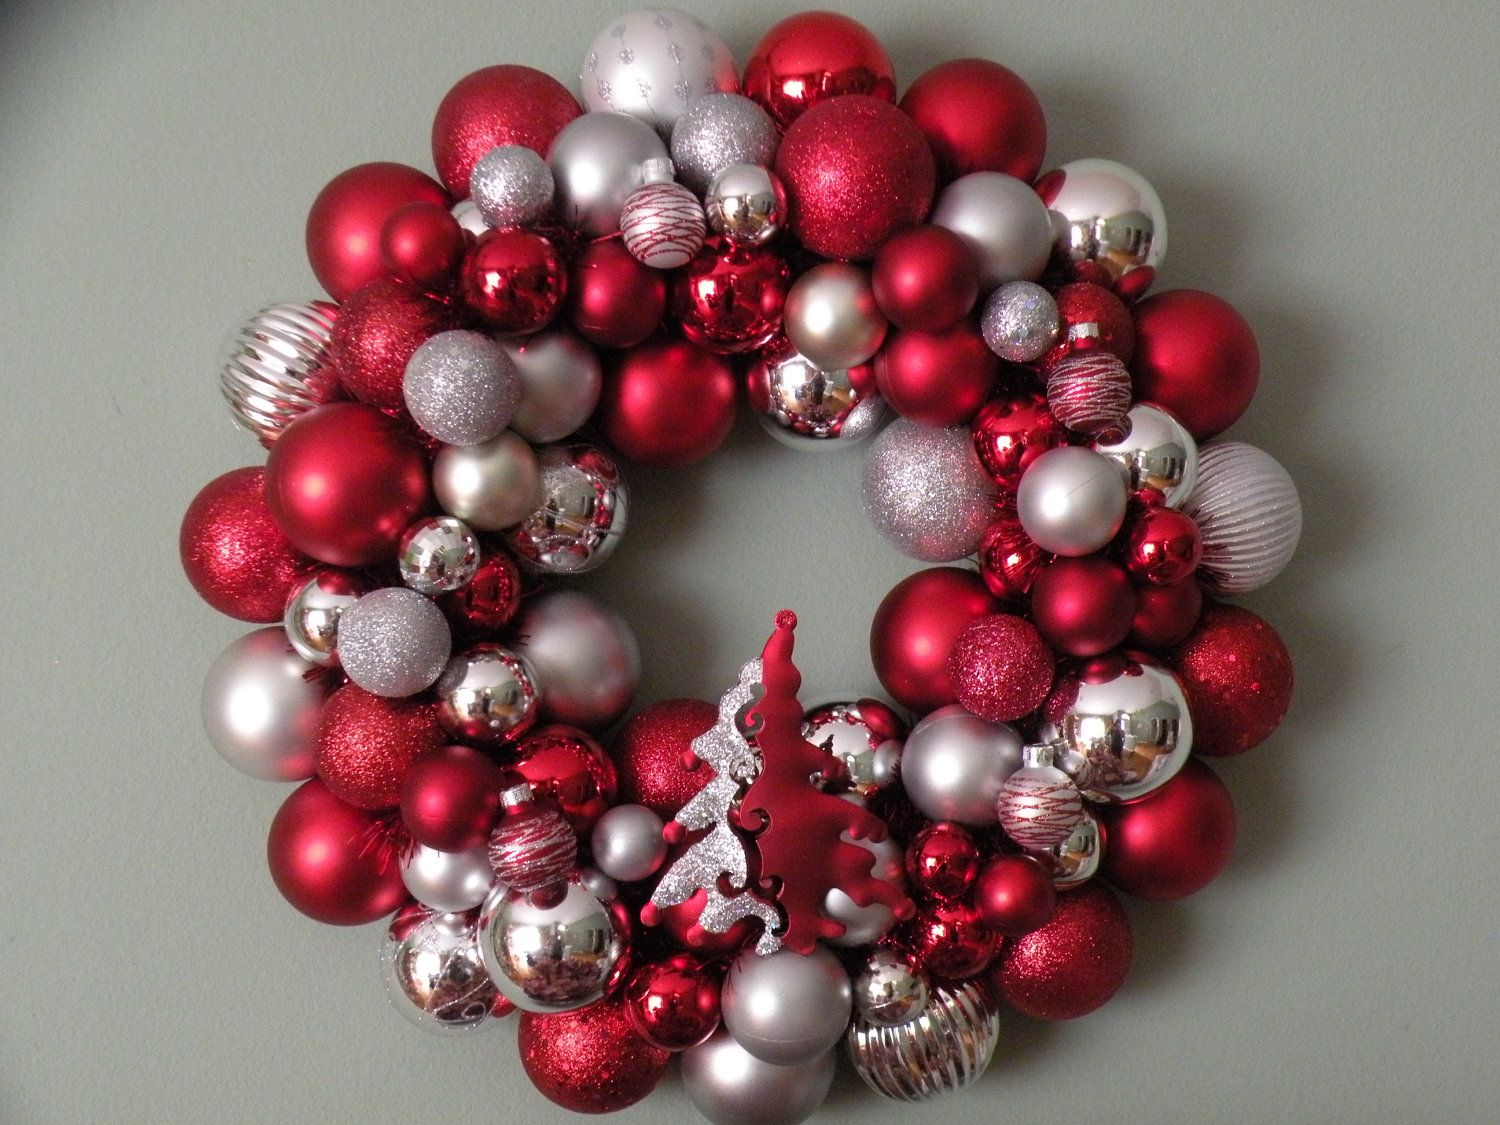 Red And Silver Christmas Ornament Wreath 53 00 Via Etsy Christmas Ornament Wreath Silver Christmas Ornaments Ornament Wreath